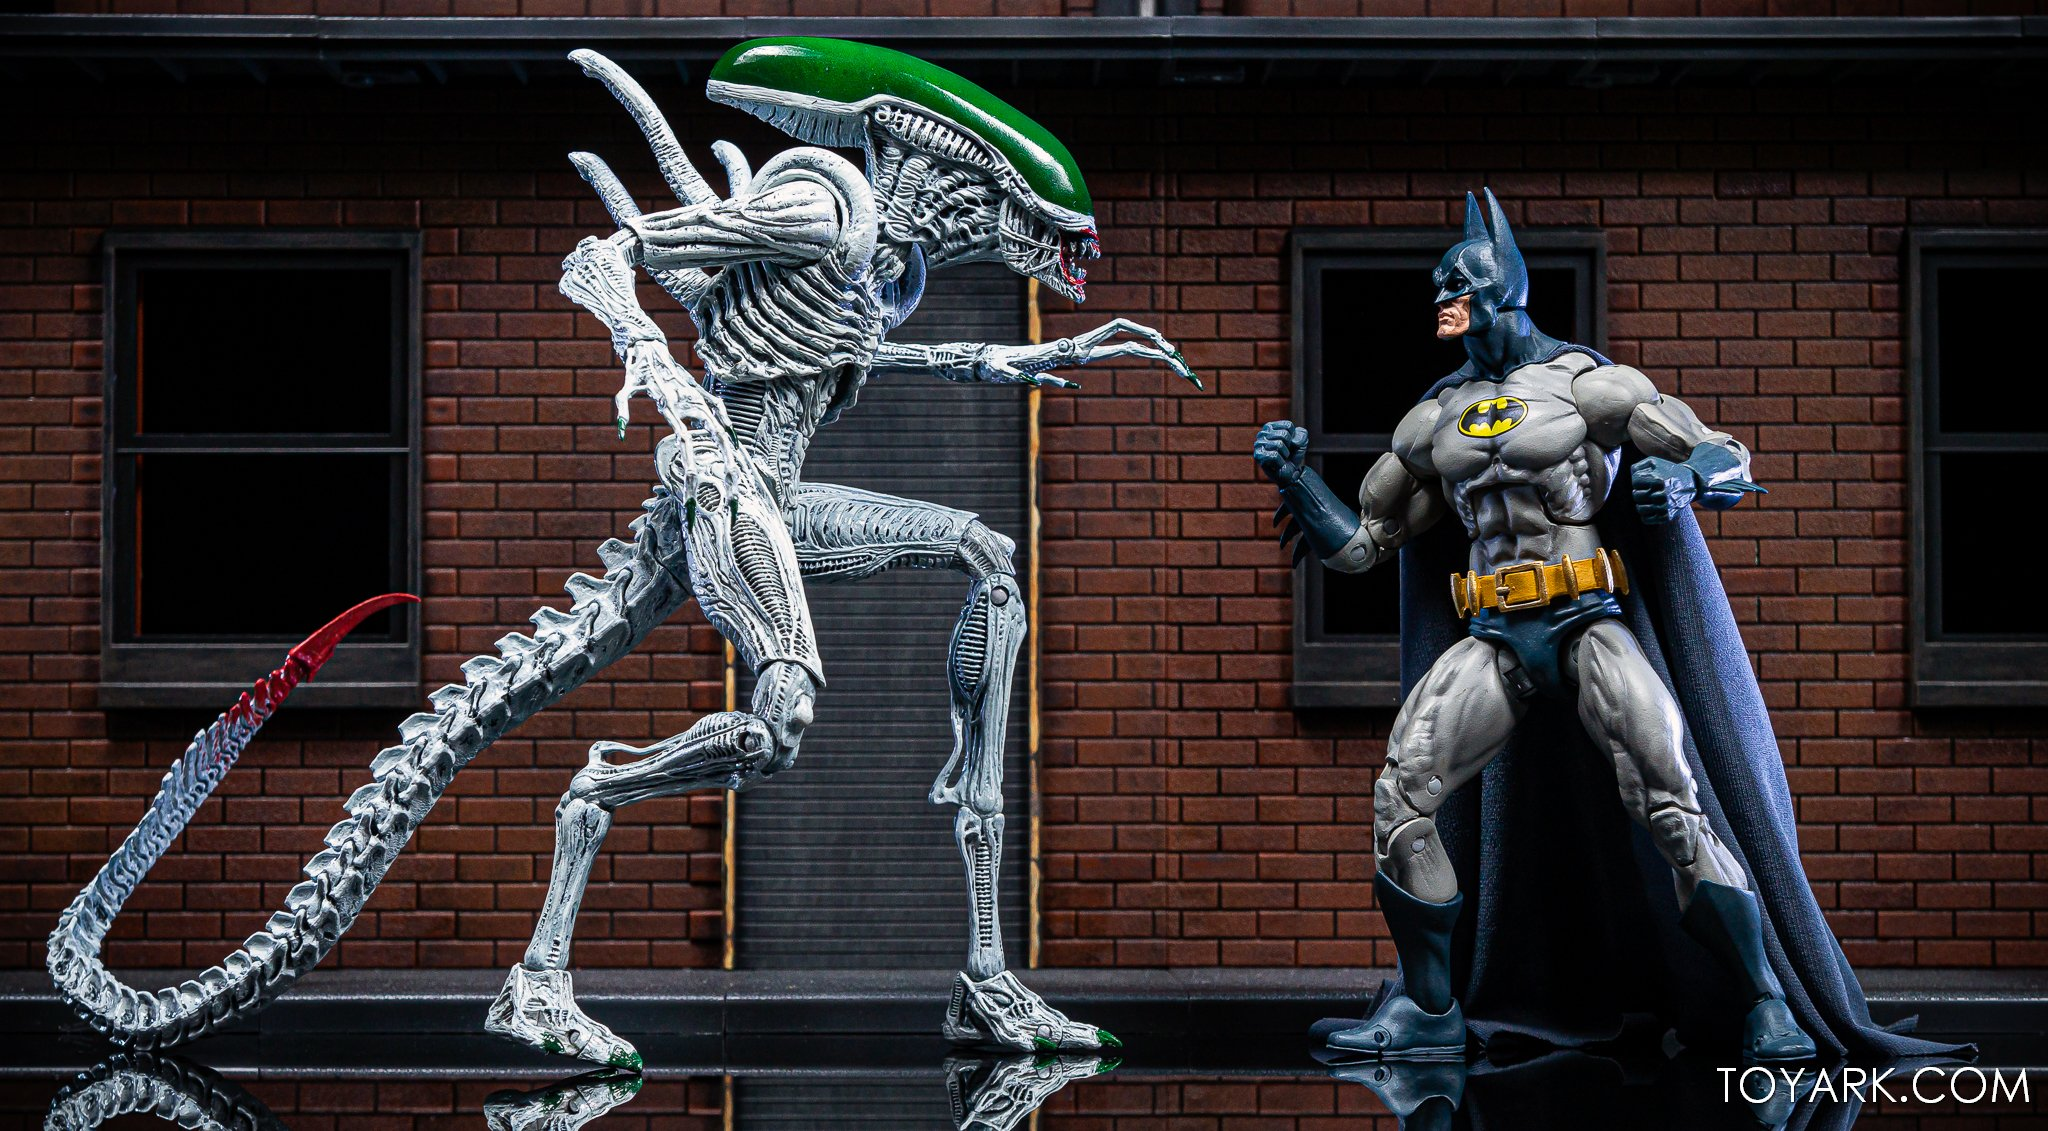 https://news.toyark.com/wp-content/uploads/sites/4/2019/10/Batman-vs-Joker-Alien-NYCC038.jpg